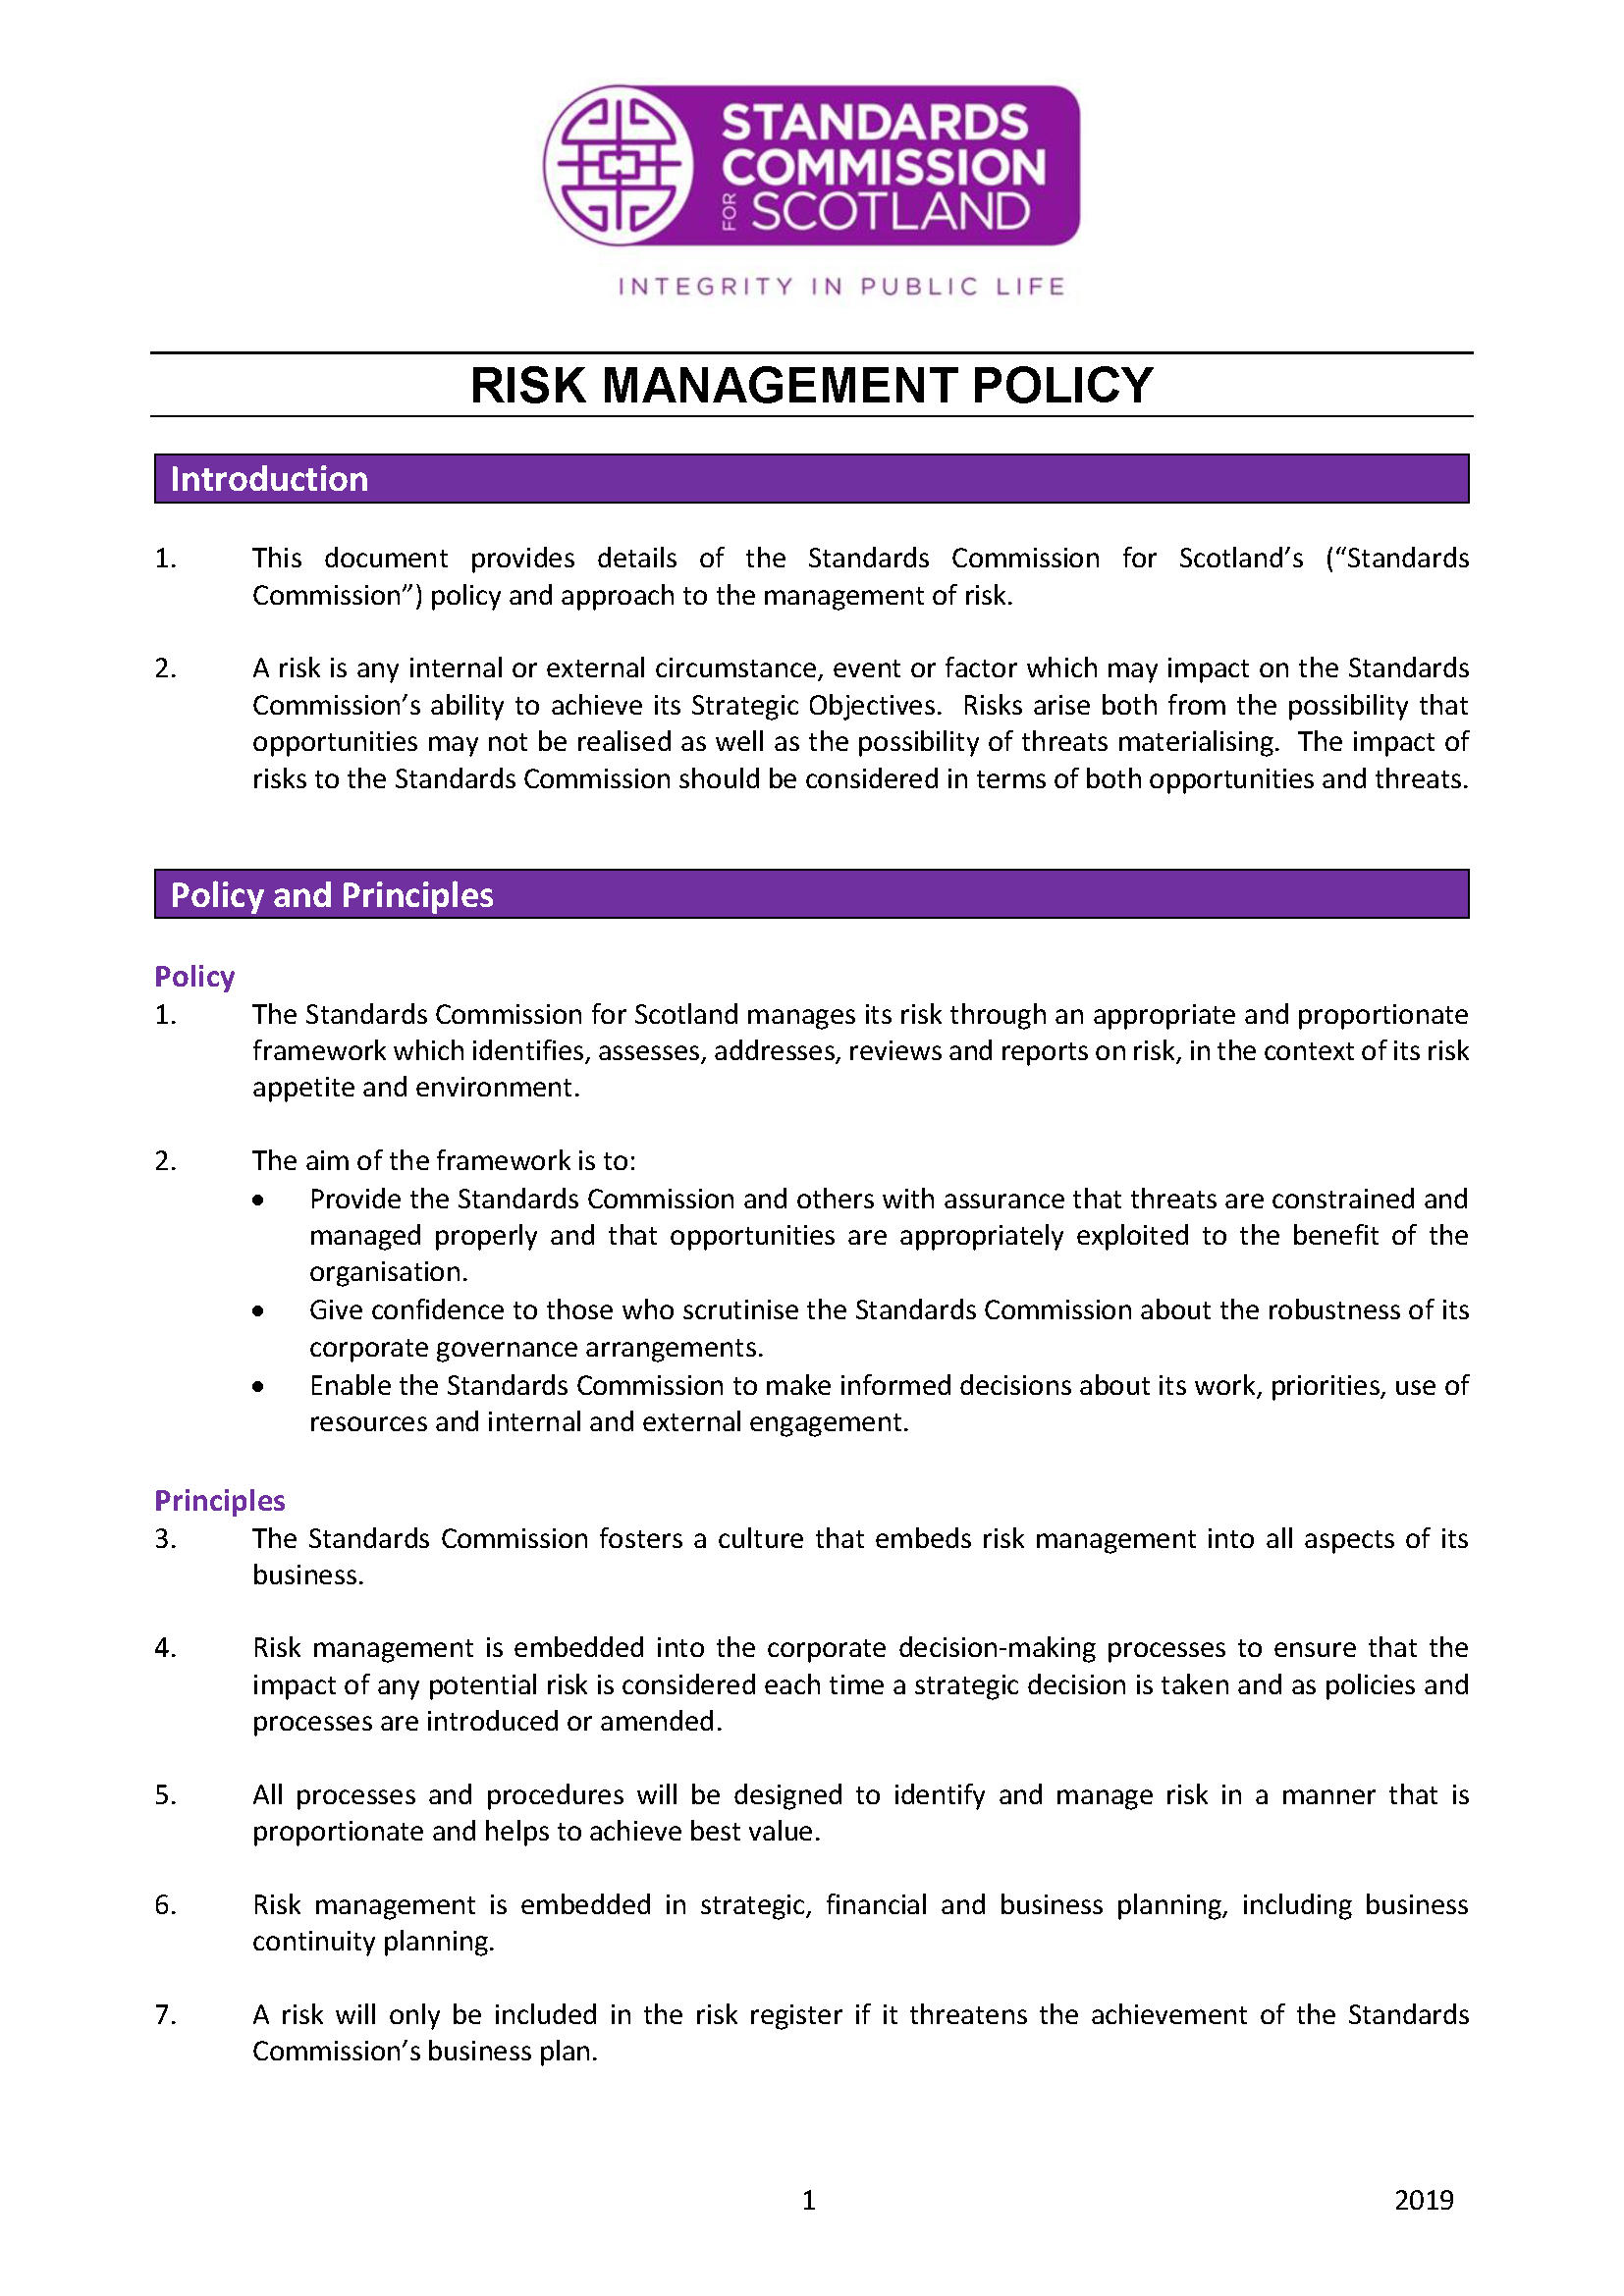 Risk Management Policy